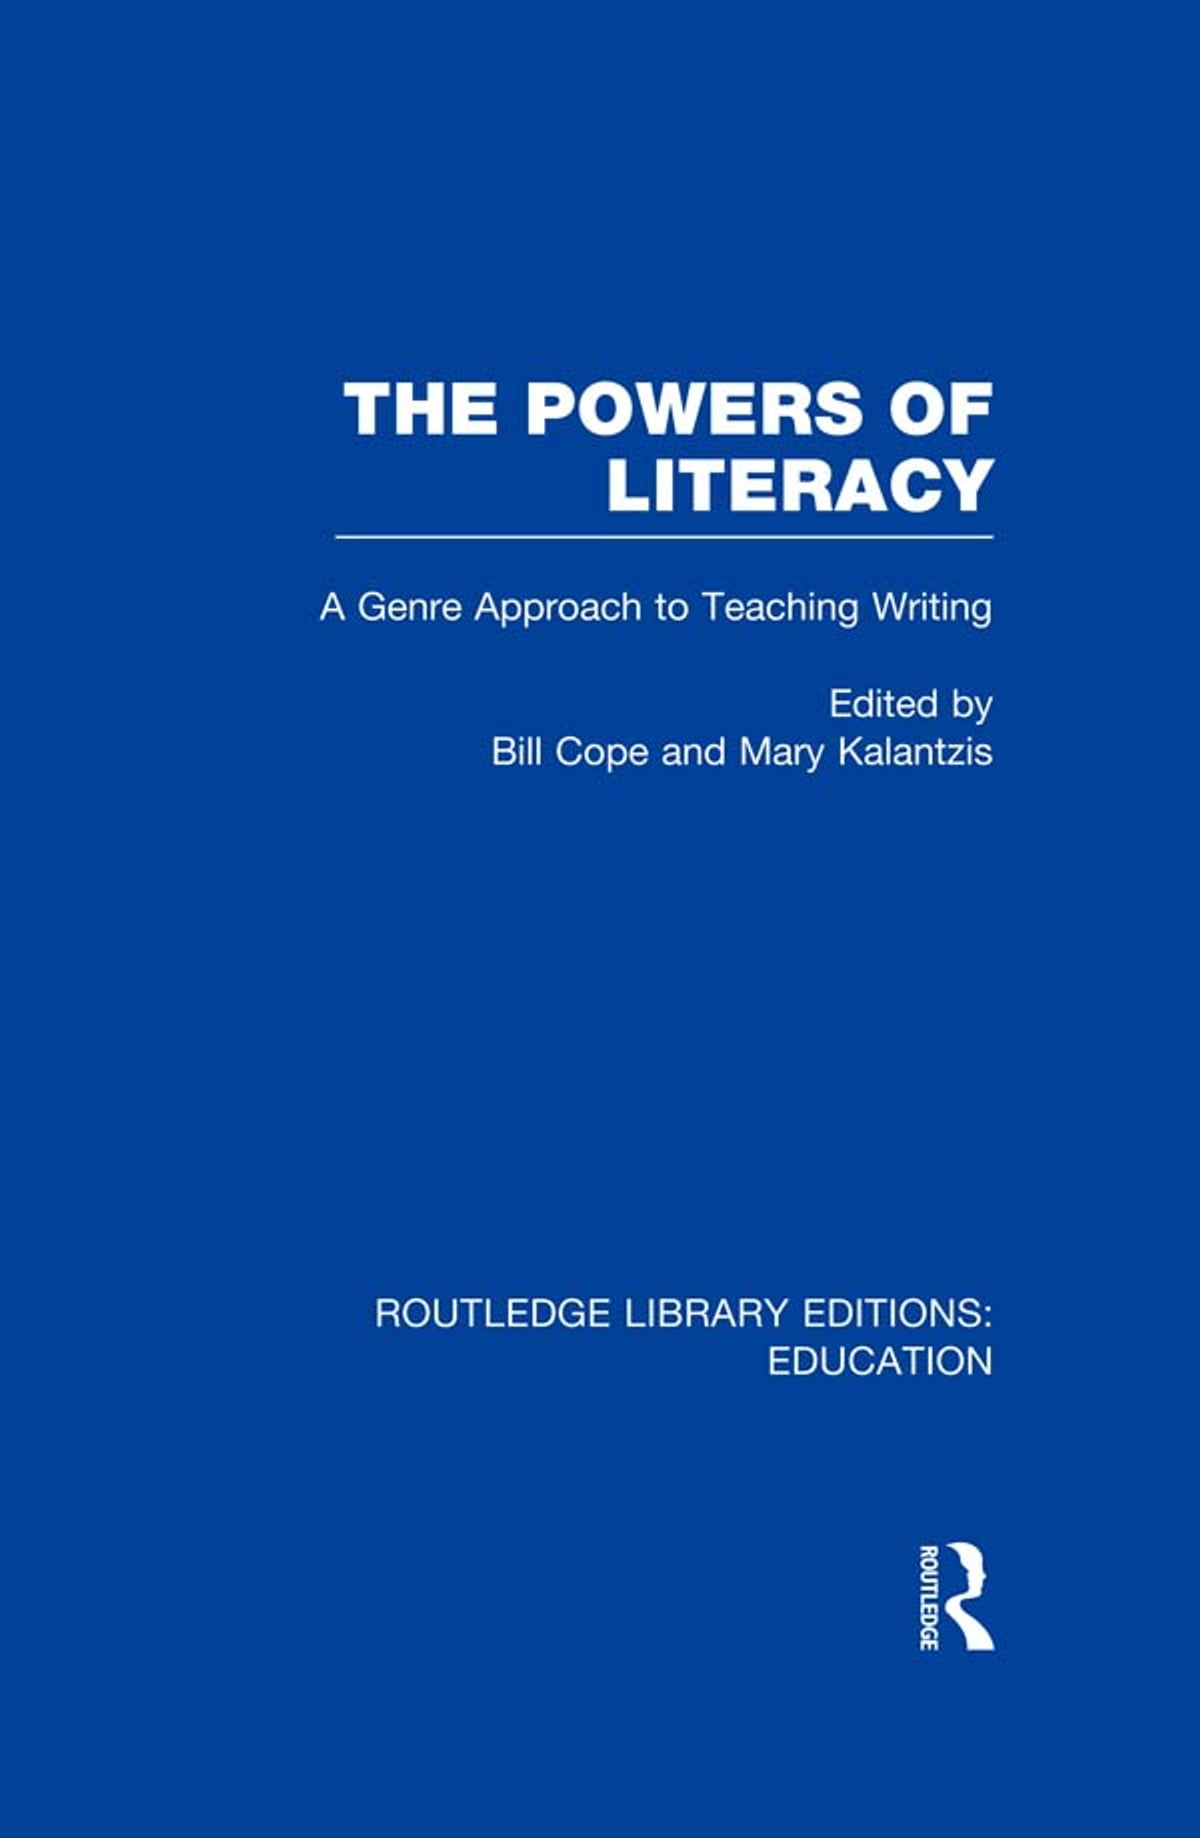 The powers of literacy rle edu i ebook by 9781136515354 the powers of literacy rle edu i ebook by 9781136515354 rakuten kobo fandeluxe Epub